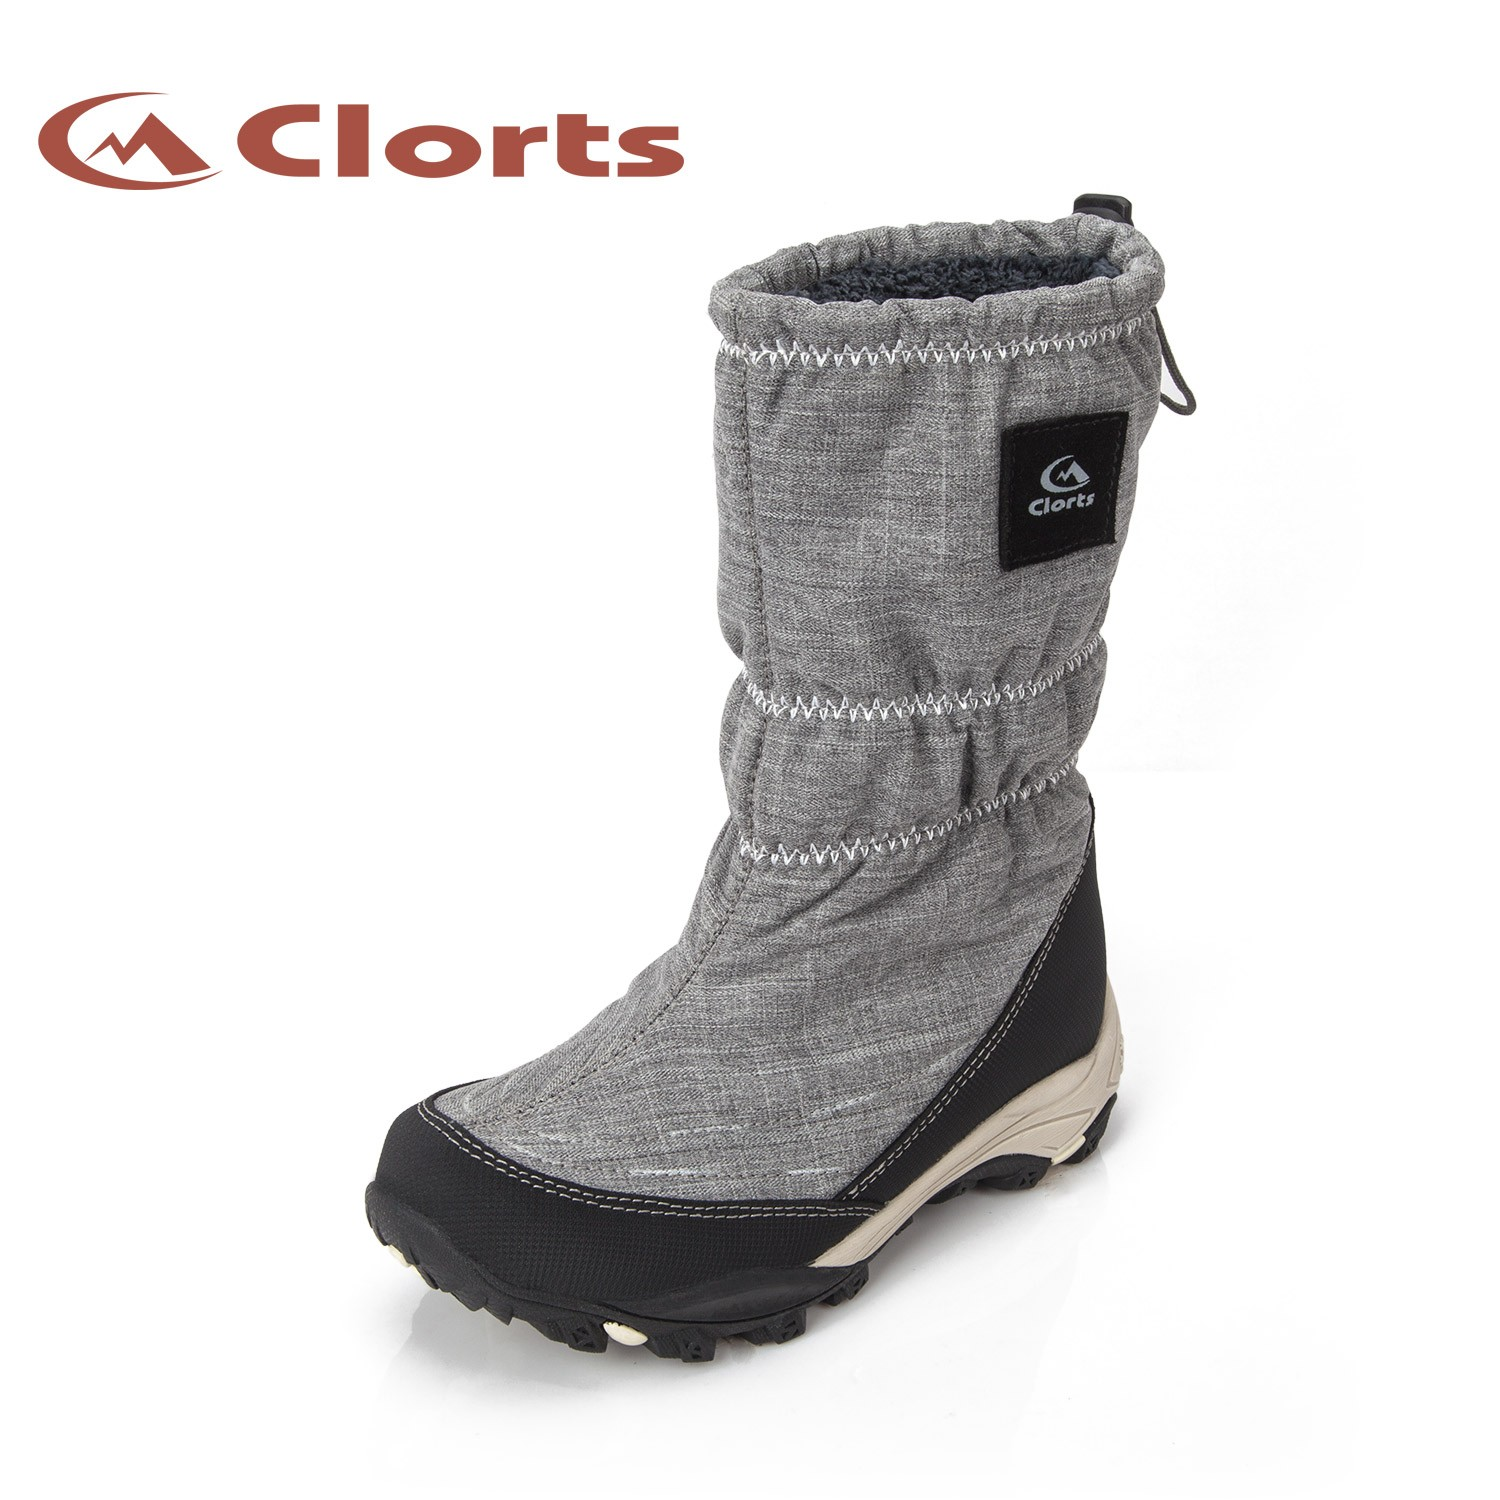 Female High Waterproof Snow Boots Manufacturers, Female High Waterproof Snow Boots Factory, Supply Female High Waterproof Snow Boots